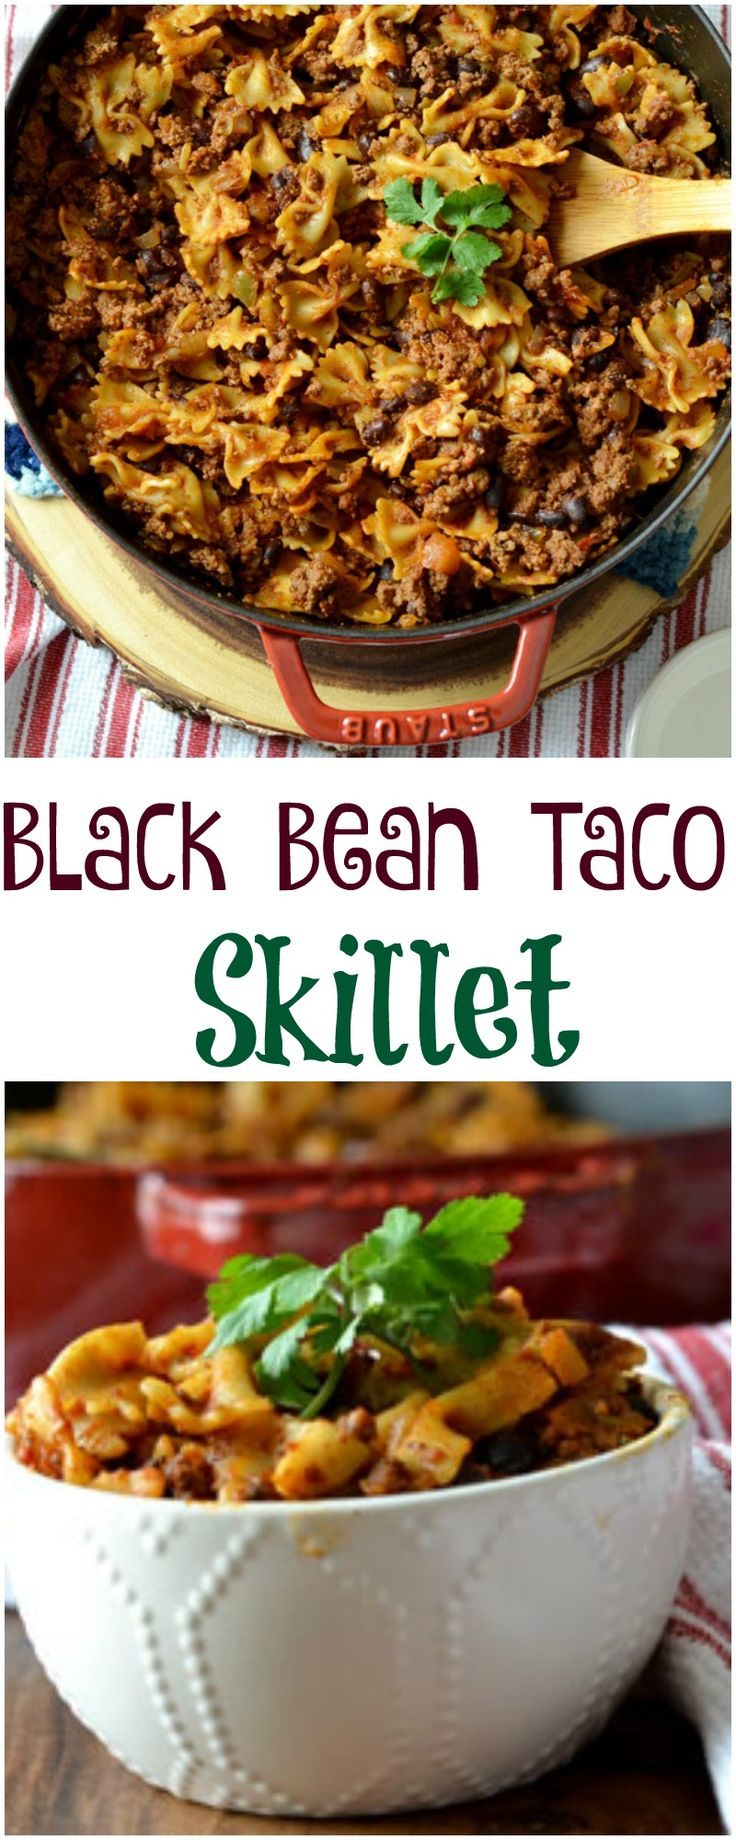 Black Bean Taco Skillet is a quick and easy one pot meal. It is a 35 minute skillet meal perfect for a busy weeknight. It is also dairy free and can be made with gluten free pasta.